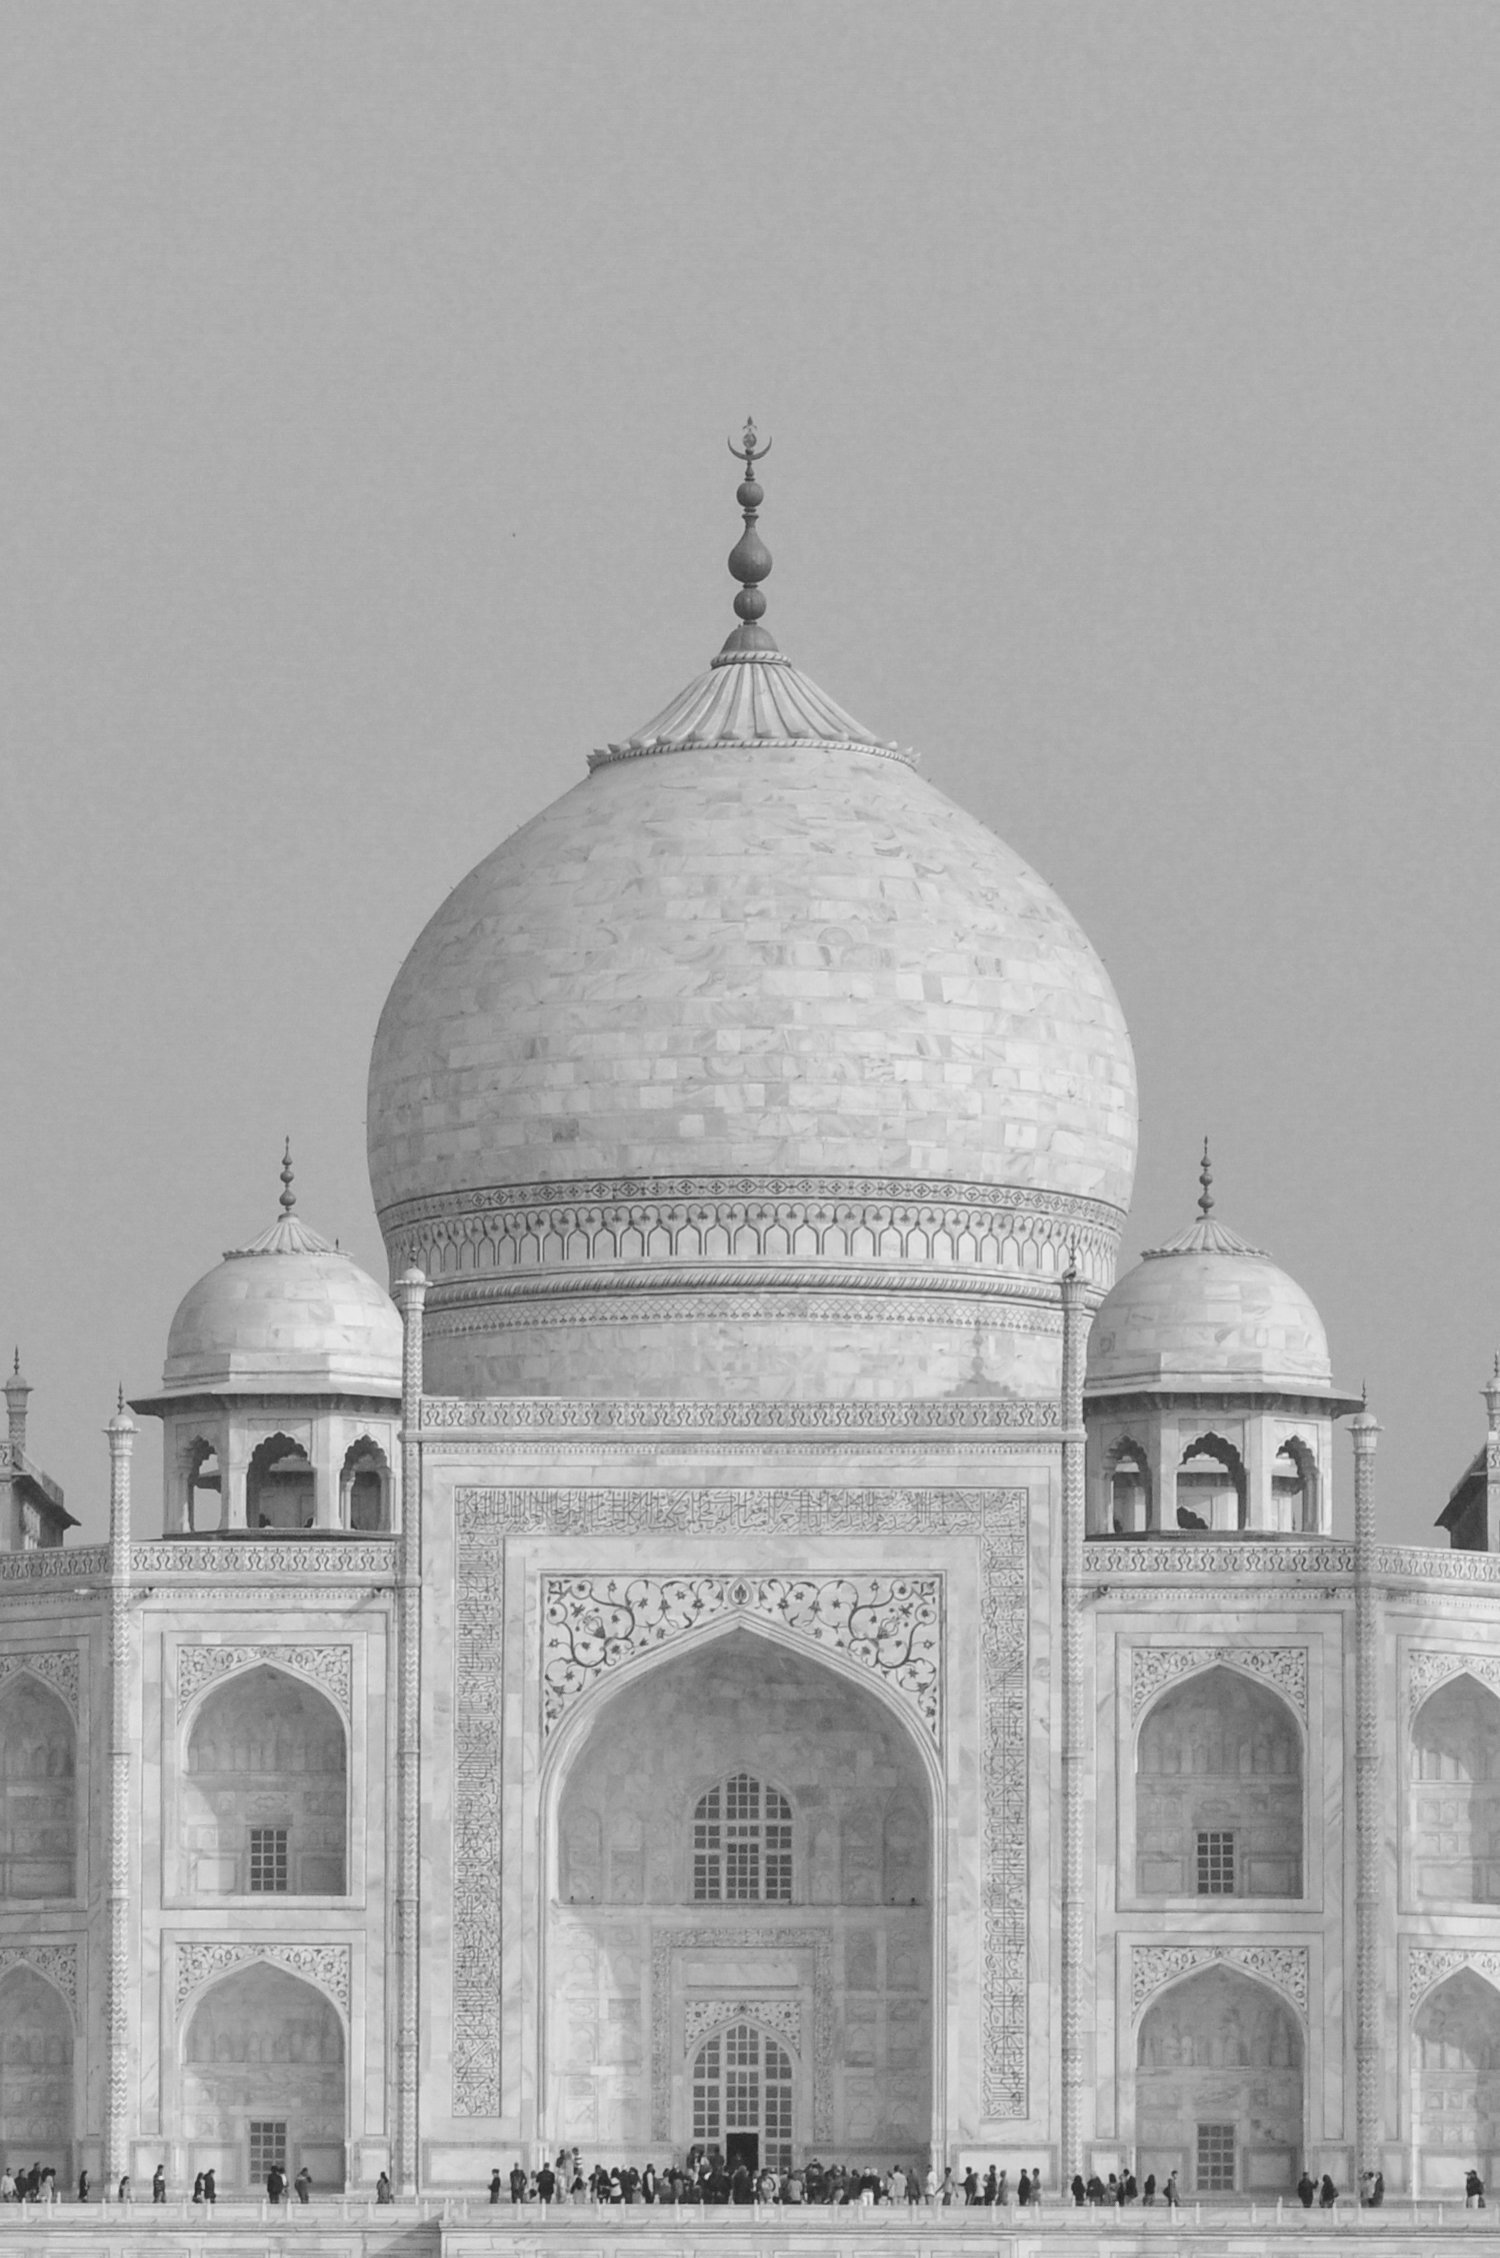 taj-mahal-lead-images (1 of 1)